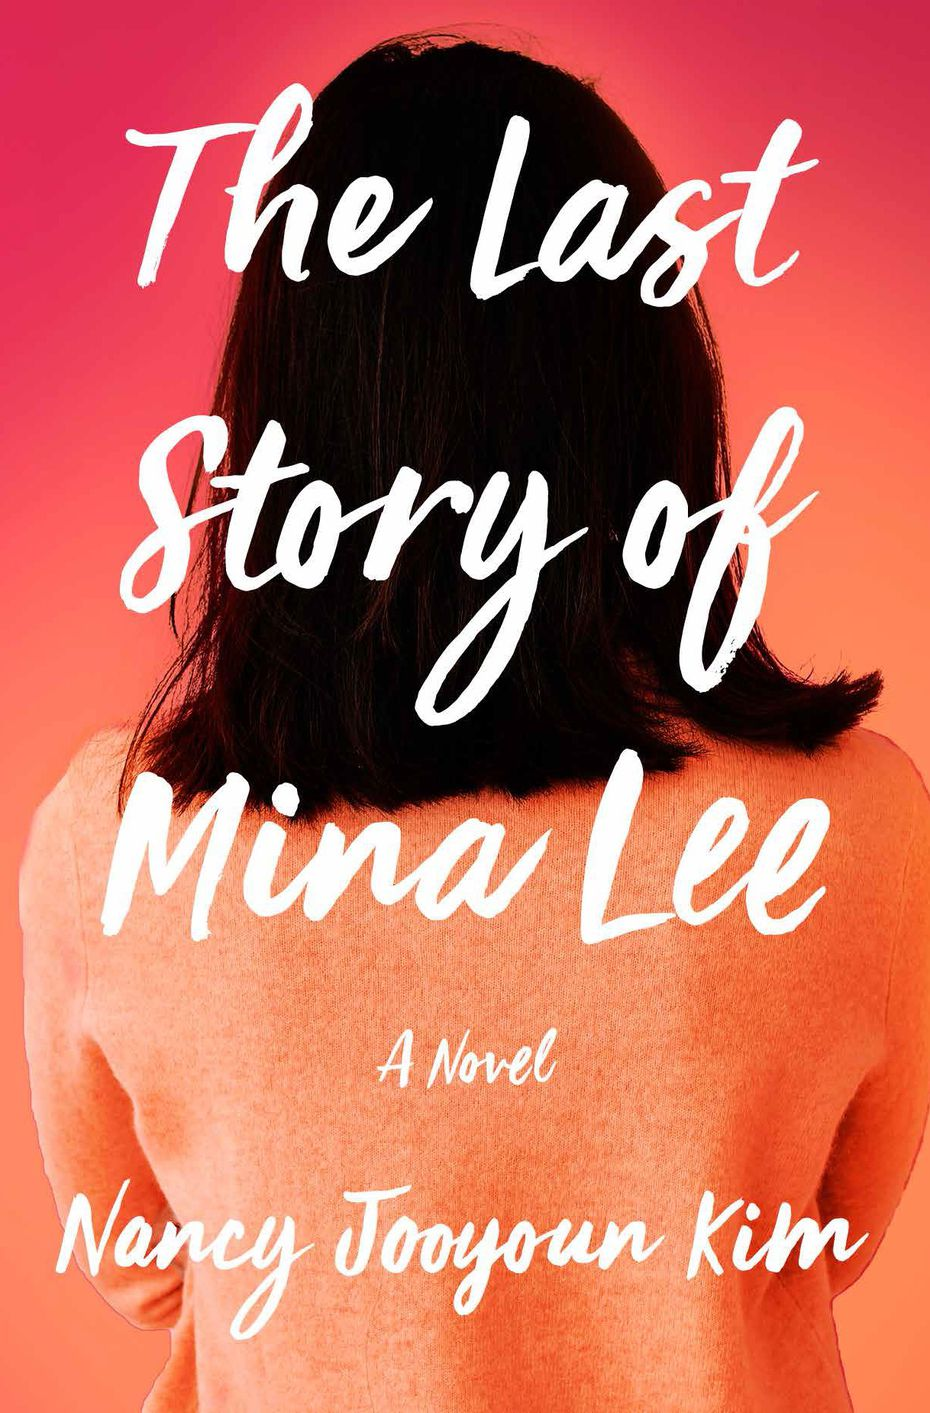 """The Last Story of Mina Lee"" by Nancy Jooyoun Kim starts with a mystery: Why isn't Mina Lee returning her daughter's calls? After finding that her mother has died, the daughter, Margot, starts to unravel her mother's past."